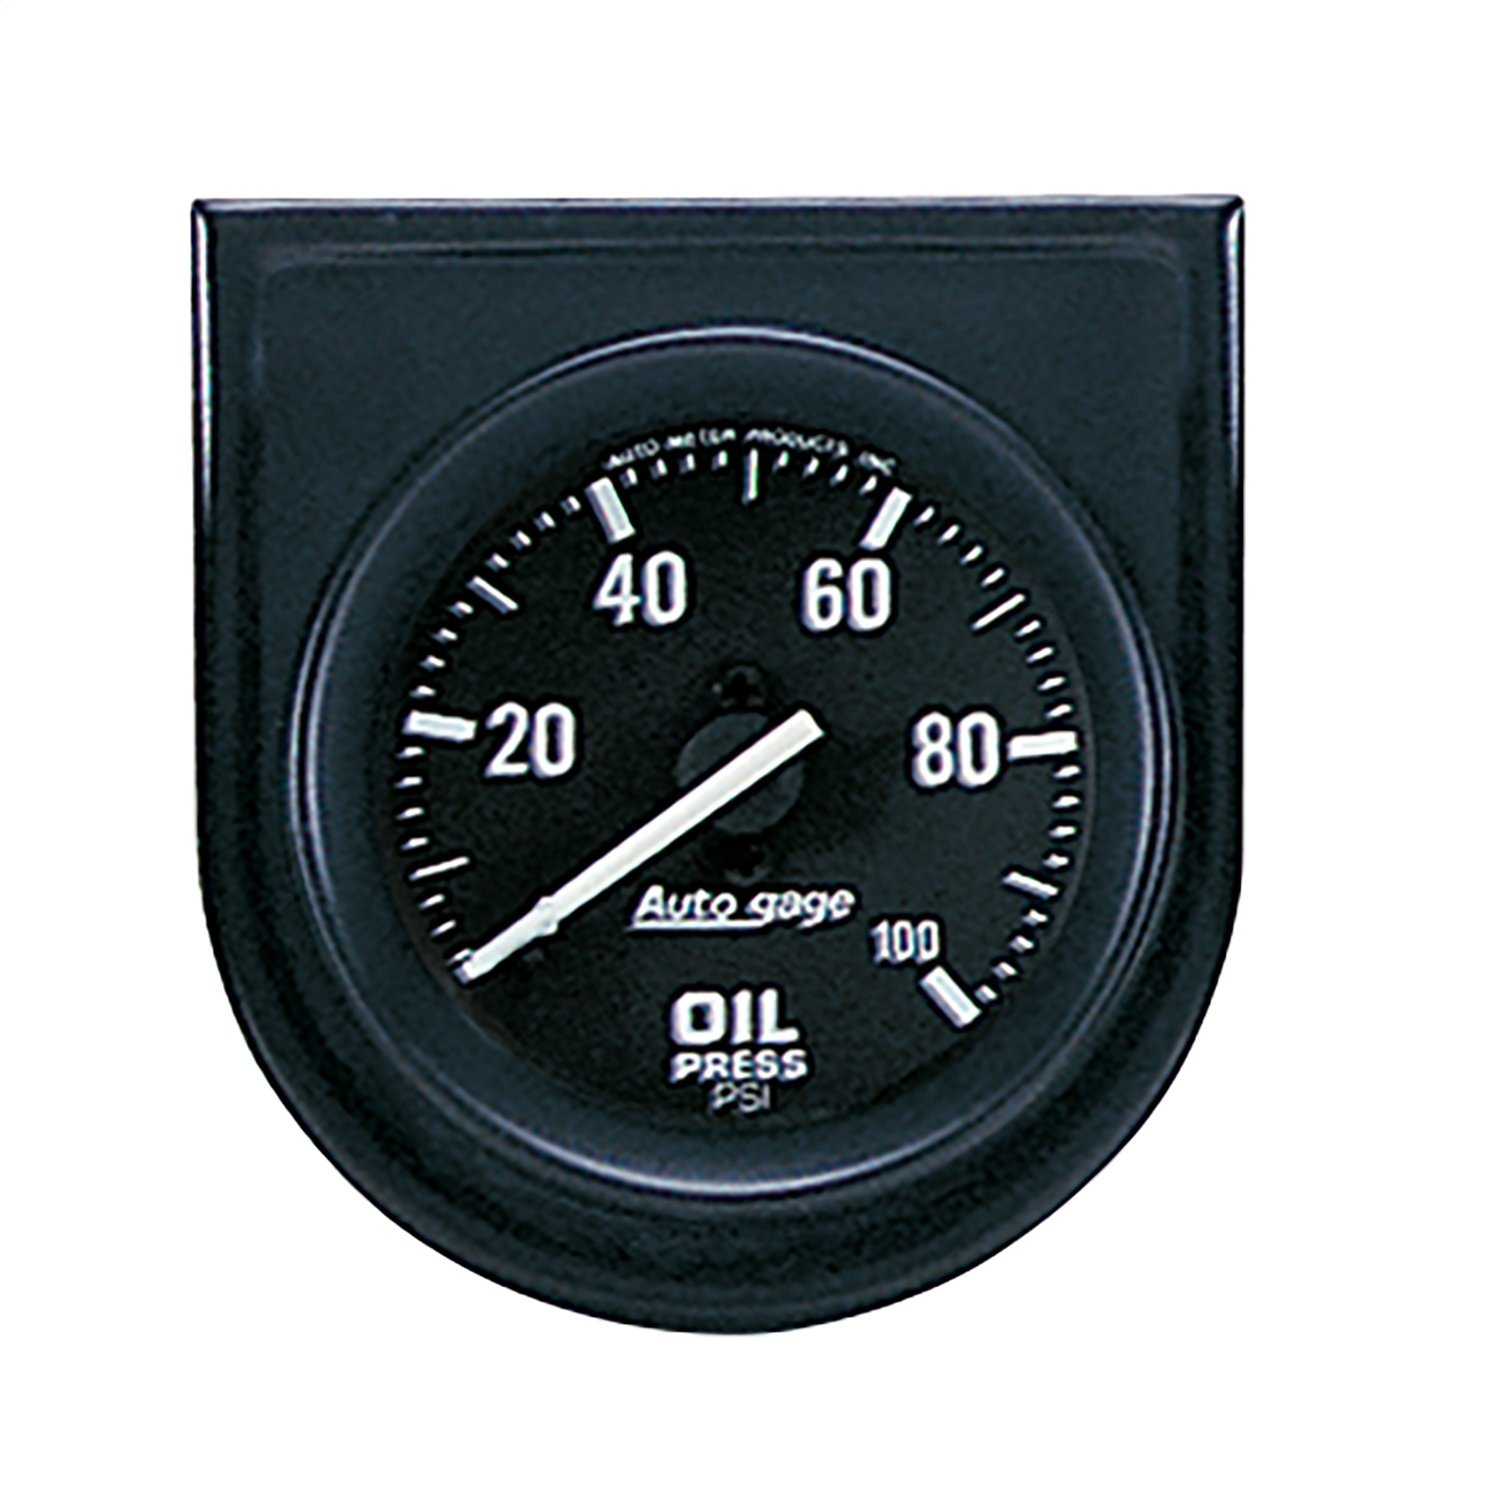 Auto Meter 2332 Auto Gage Black 2-1/16' 0-100 PSI Mechanical Individual Steel Panel Oil Pressure Gauge